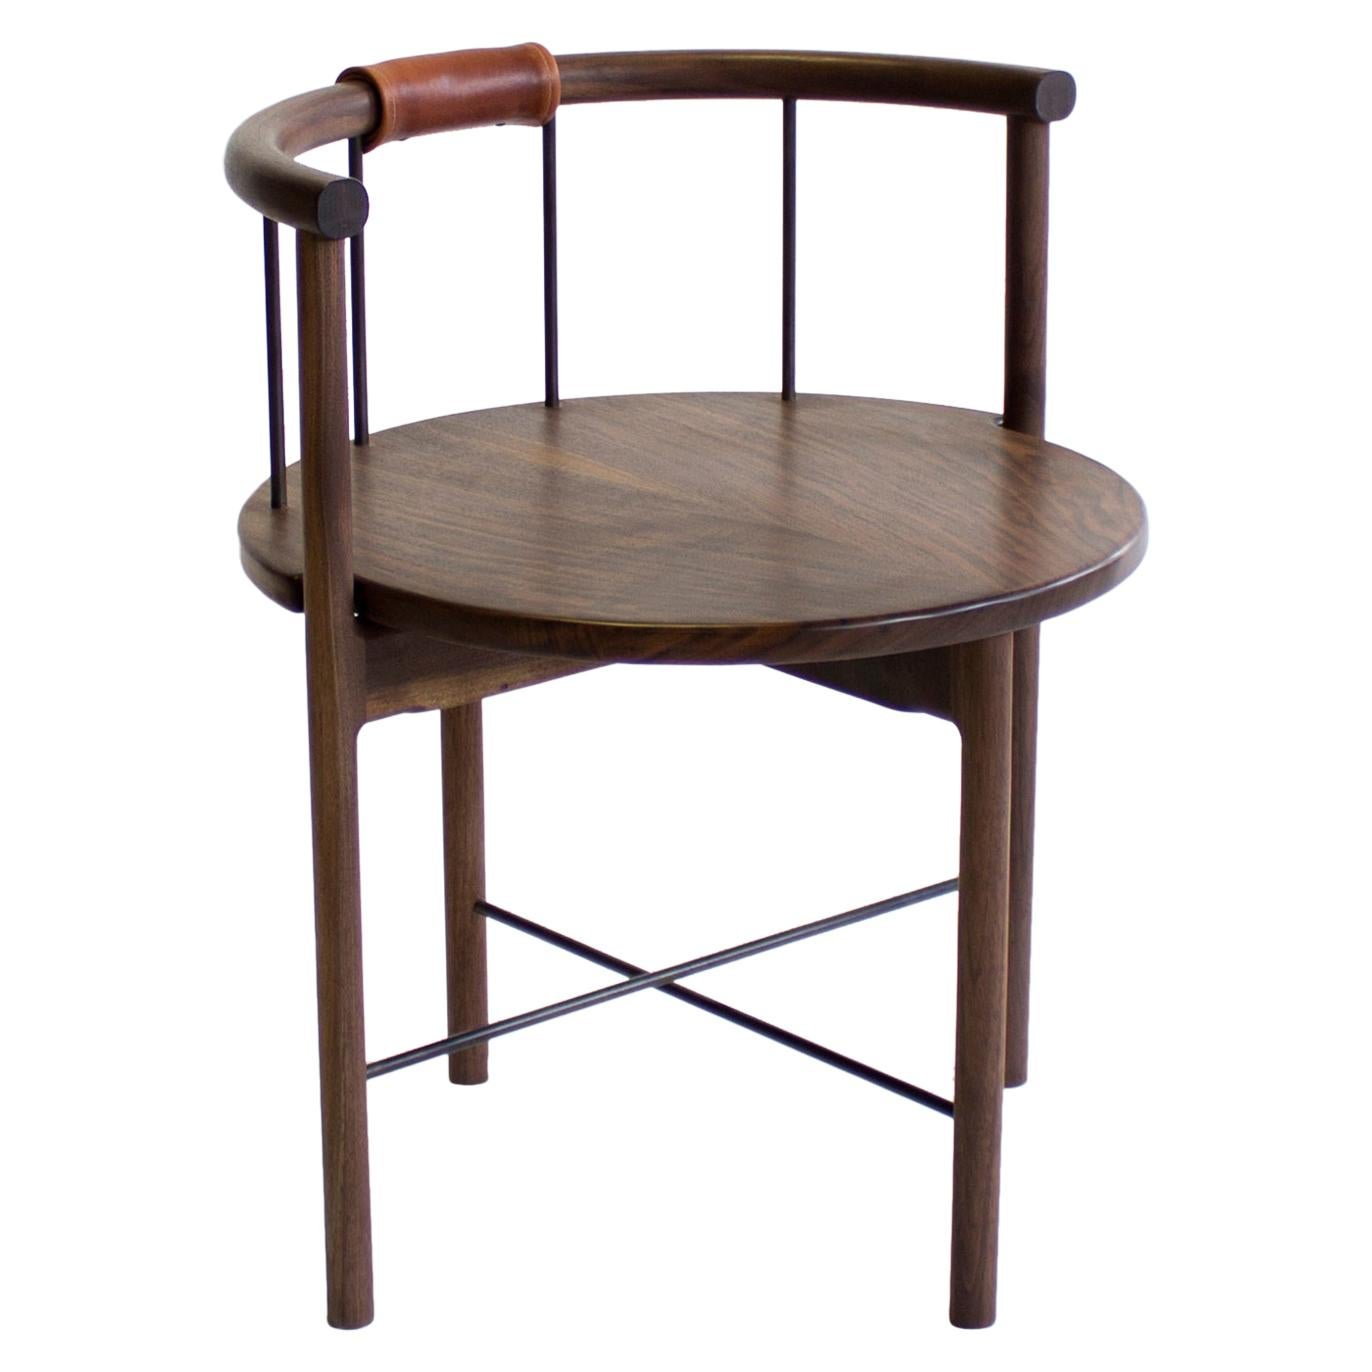 Solid Walnut Barrel-Backed Dining Chair with Brass or Bronze Rungs, Leather Grip